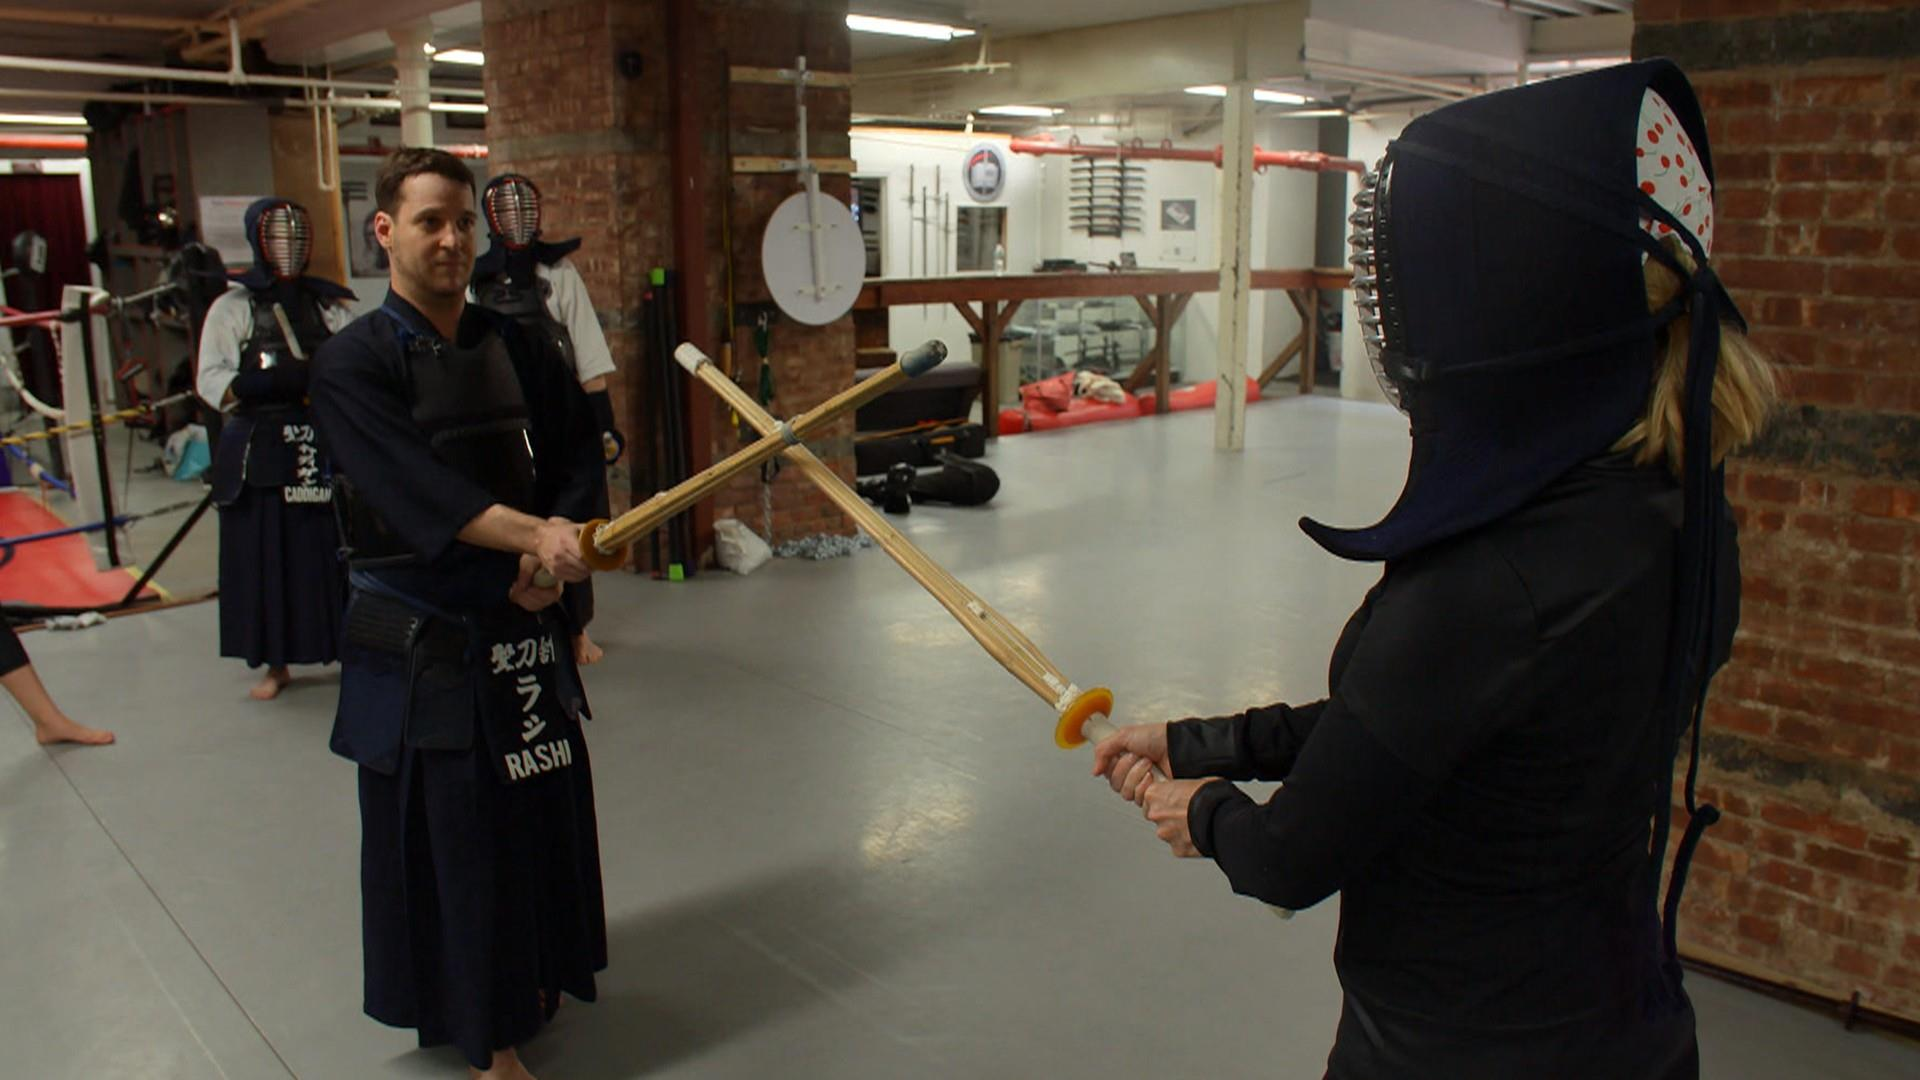 Sword fighting as a workout?! Megyn Kelly gives it a try